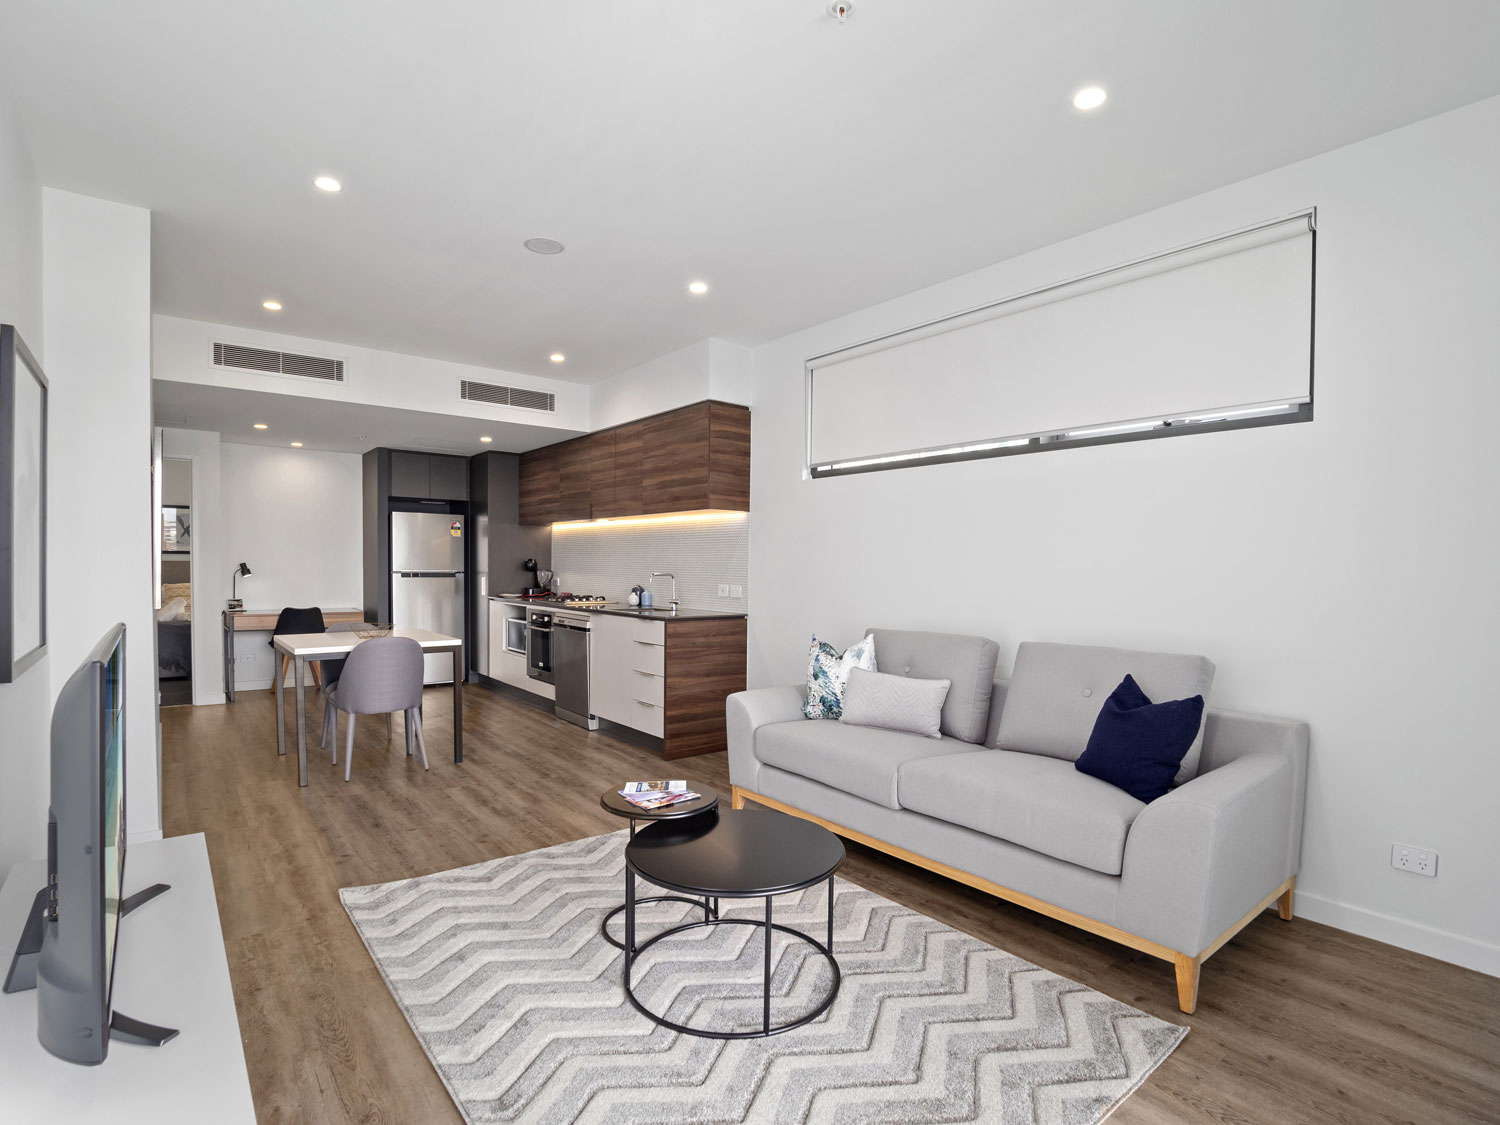 Apartment photography for Lucid Living, South Brisbane